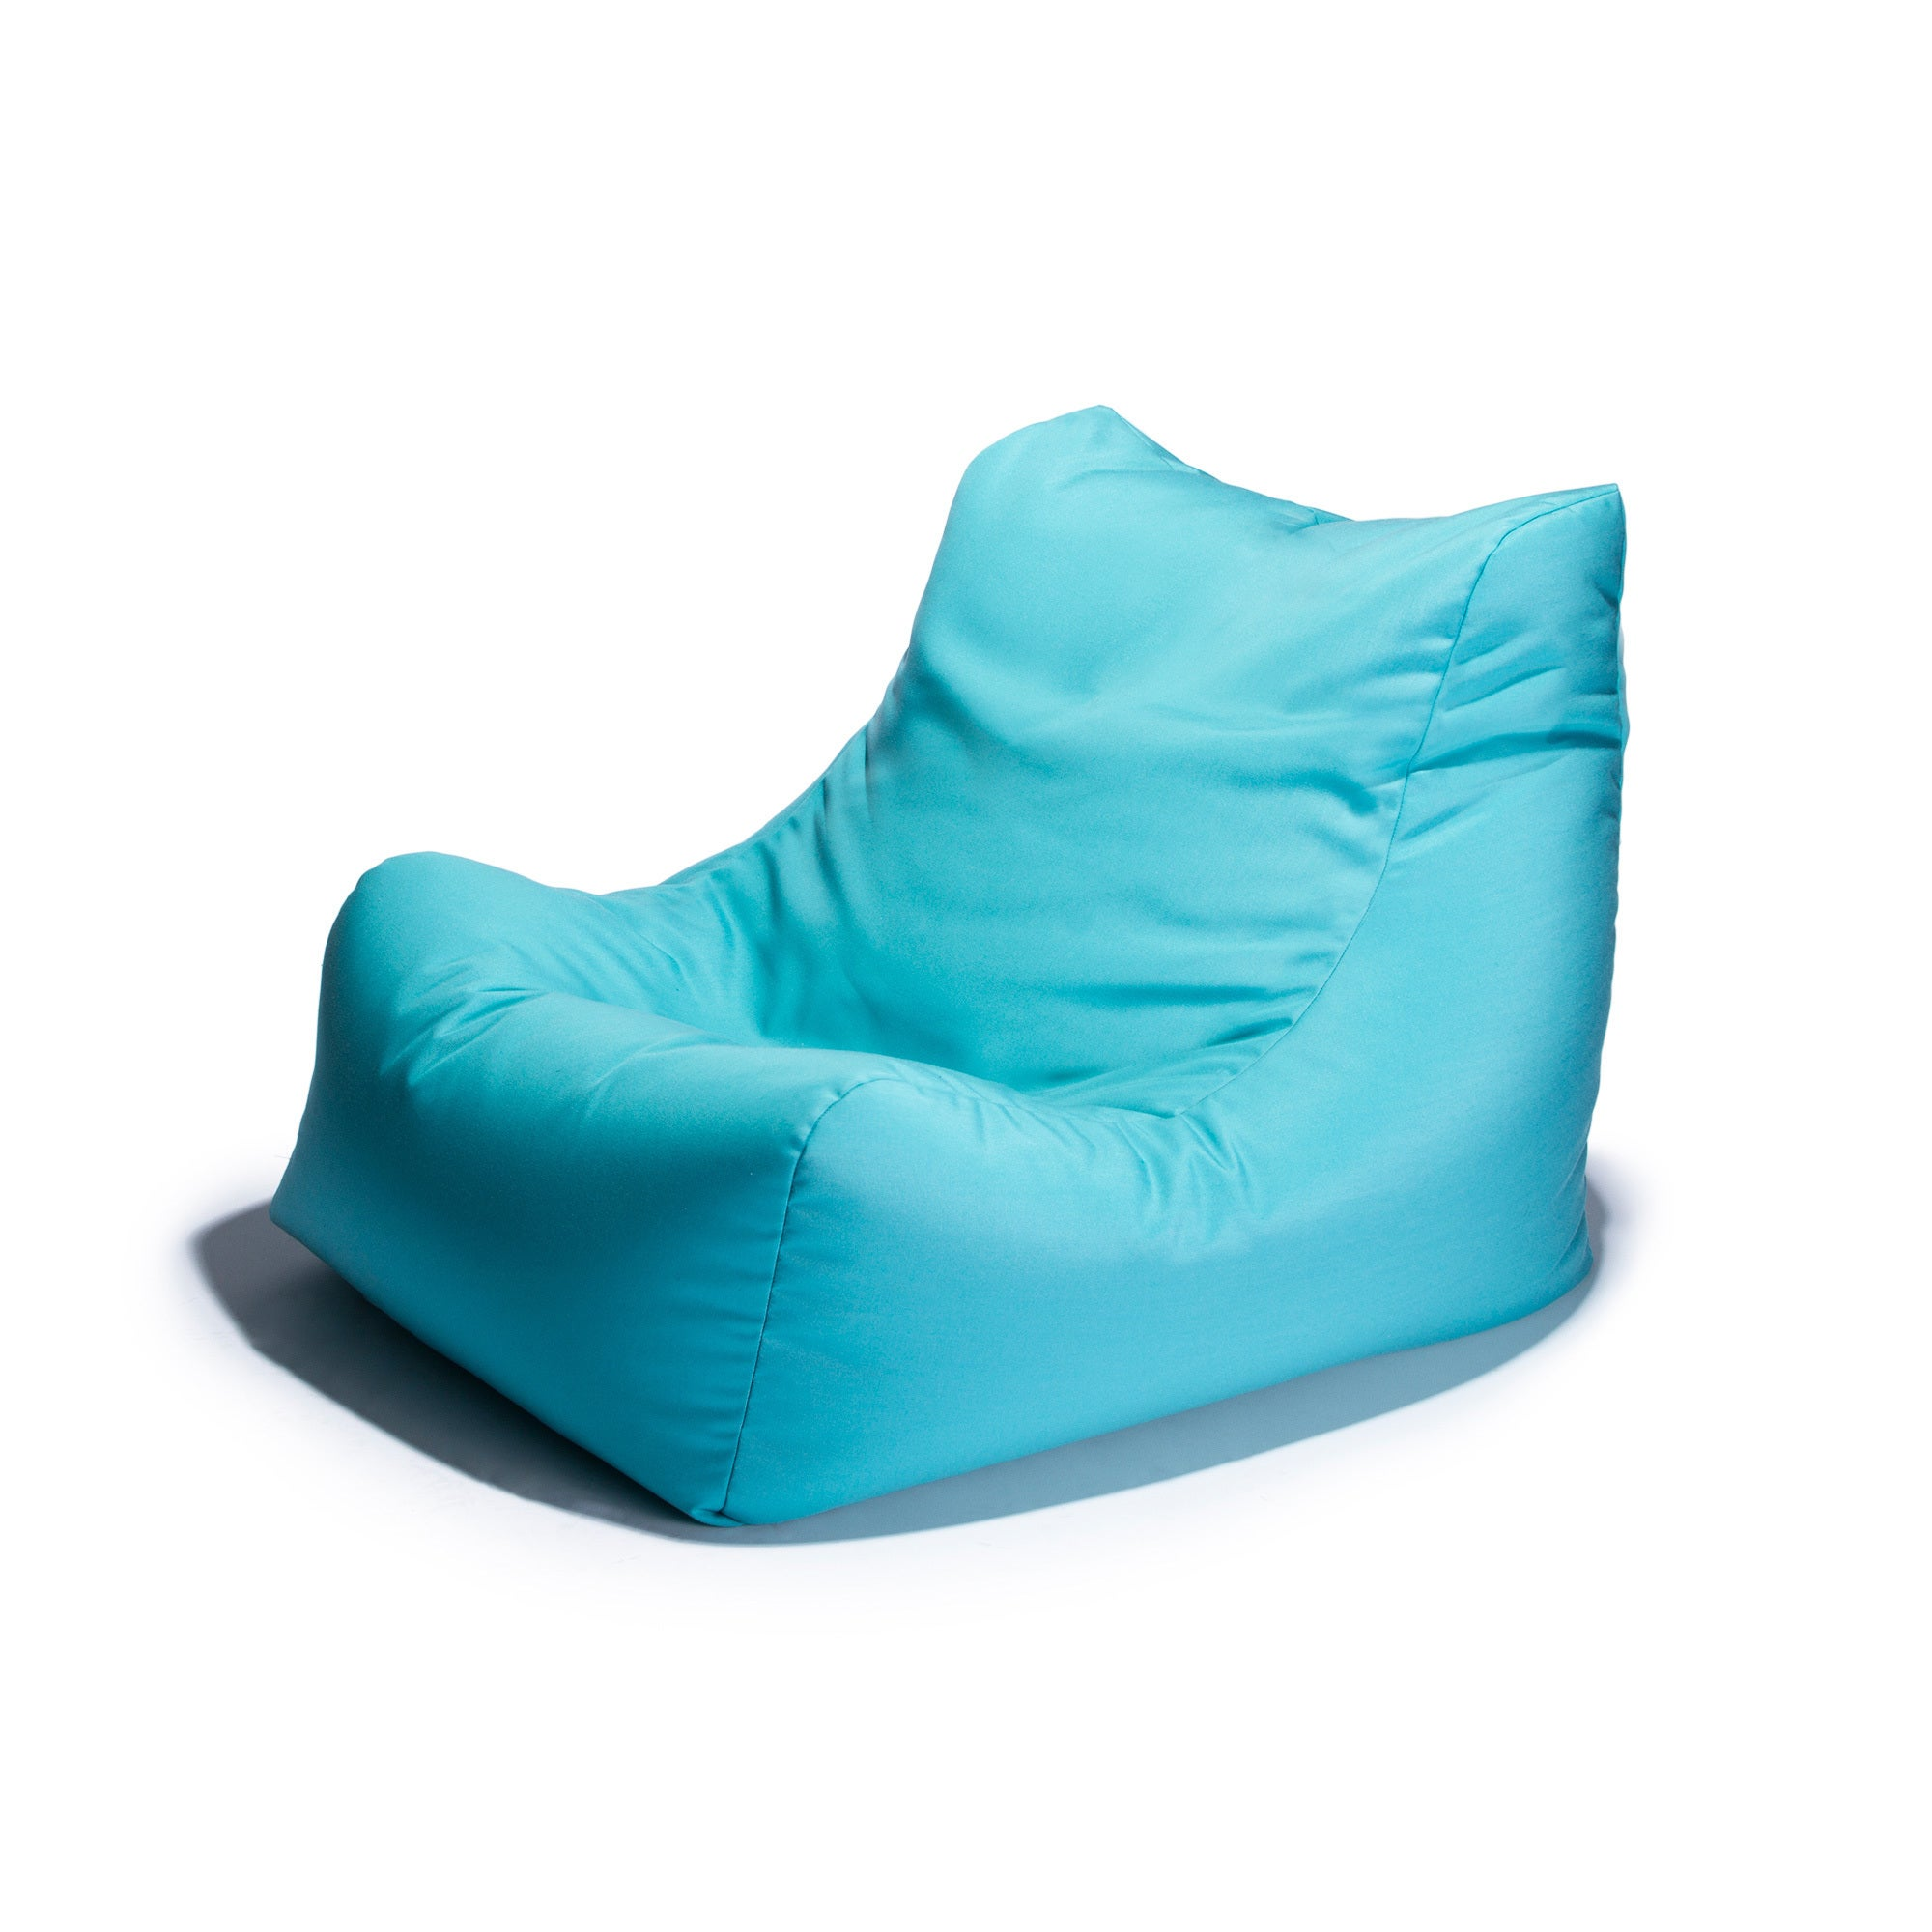 Ponce Outdoor Bean Bag Chair Overstock Shopping Big Discounts on Jaxx Bea